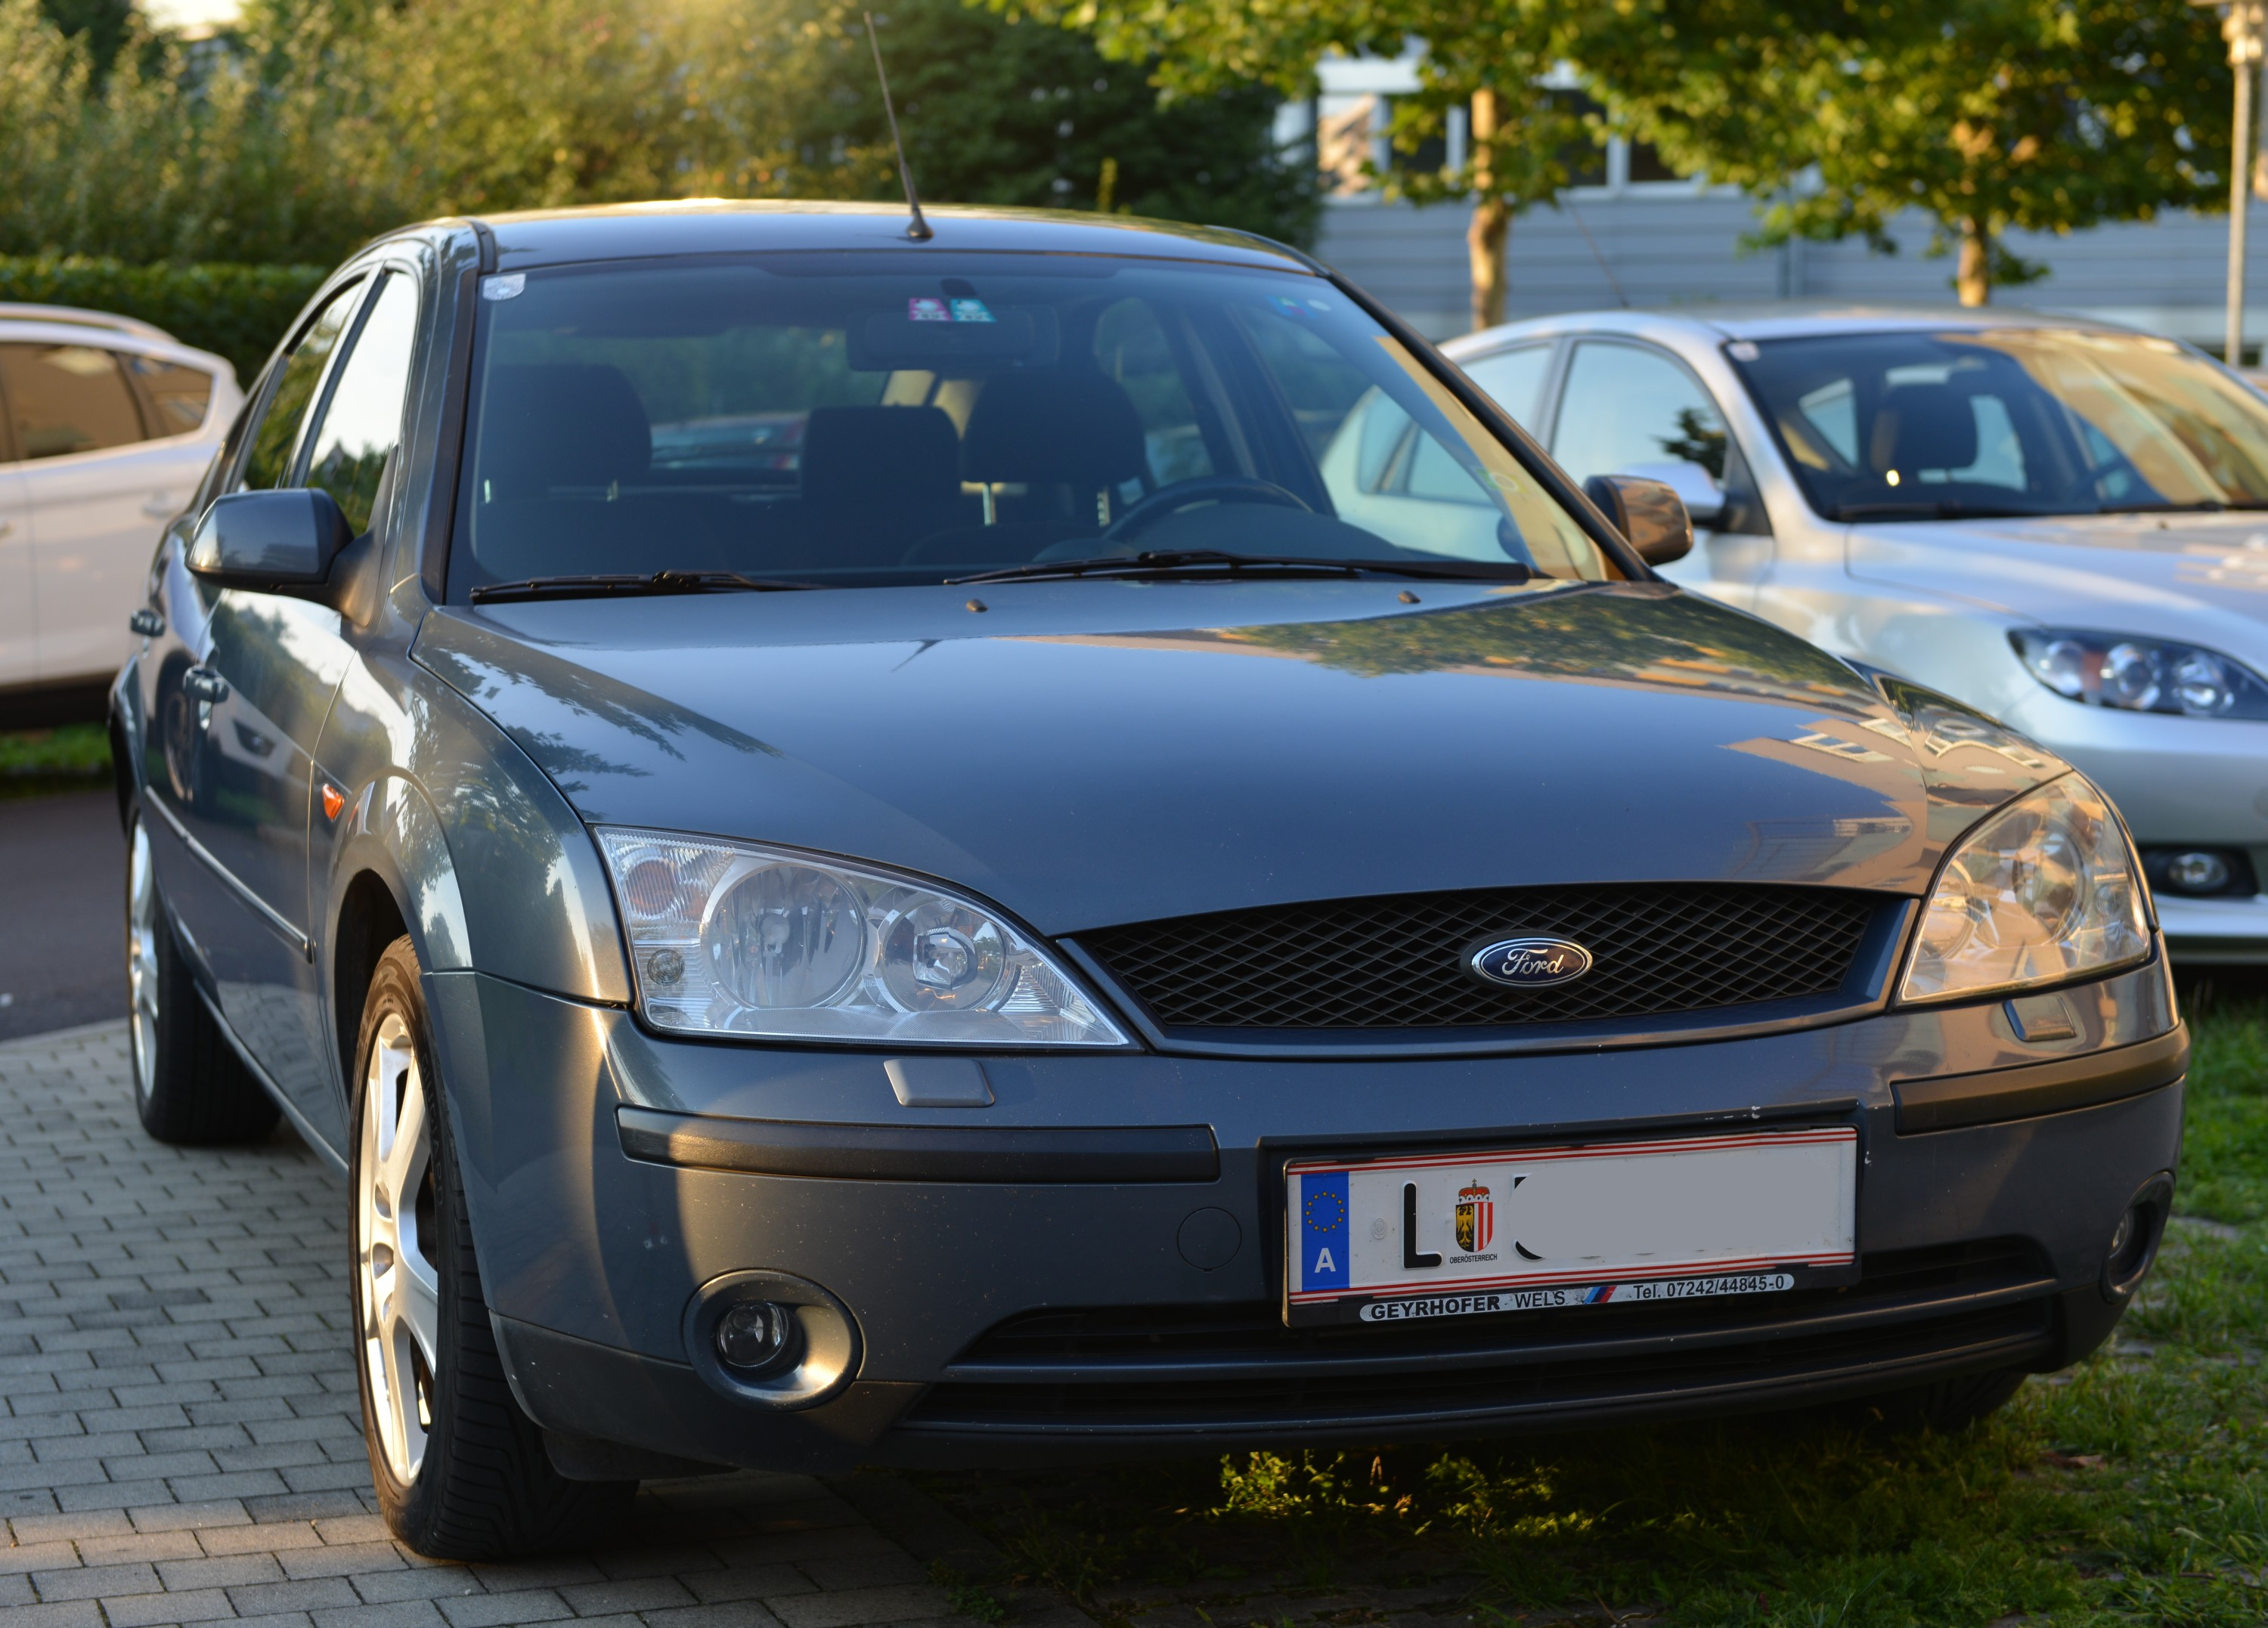 Ford Mondeo - € 1990